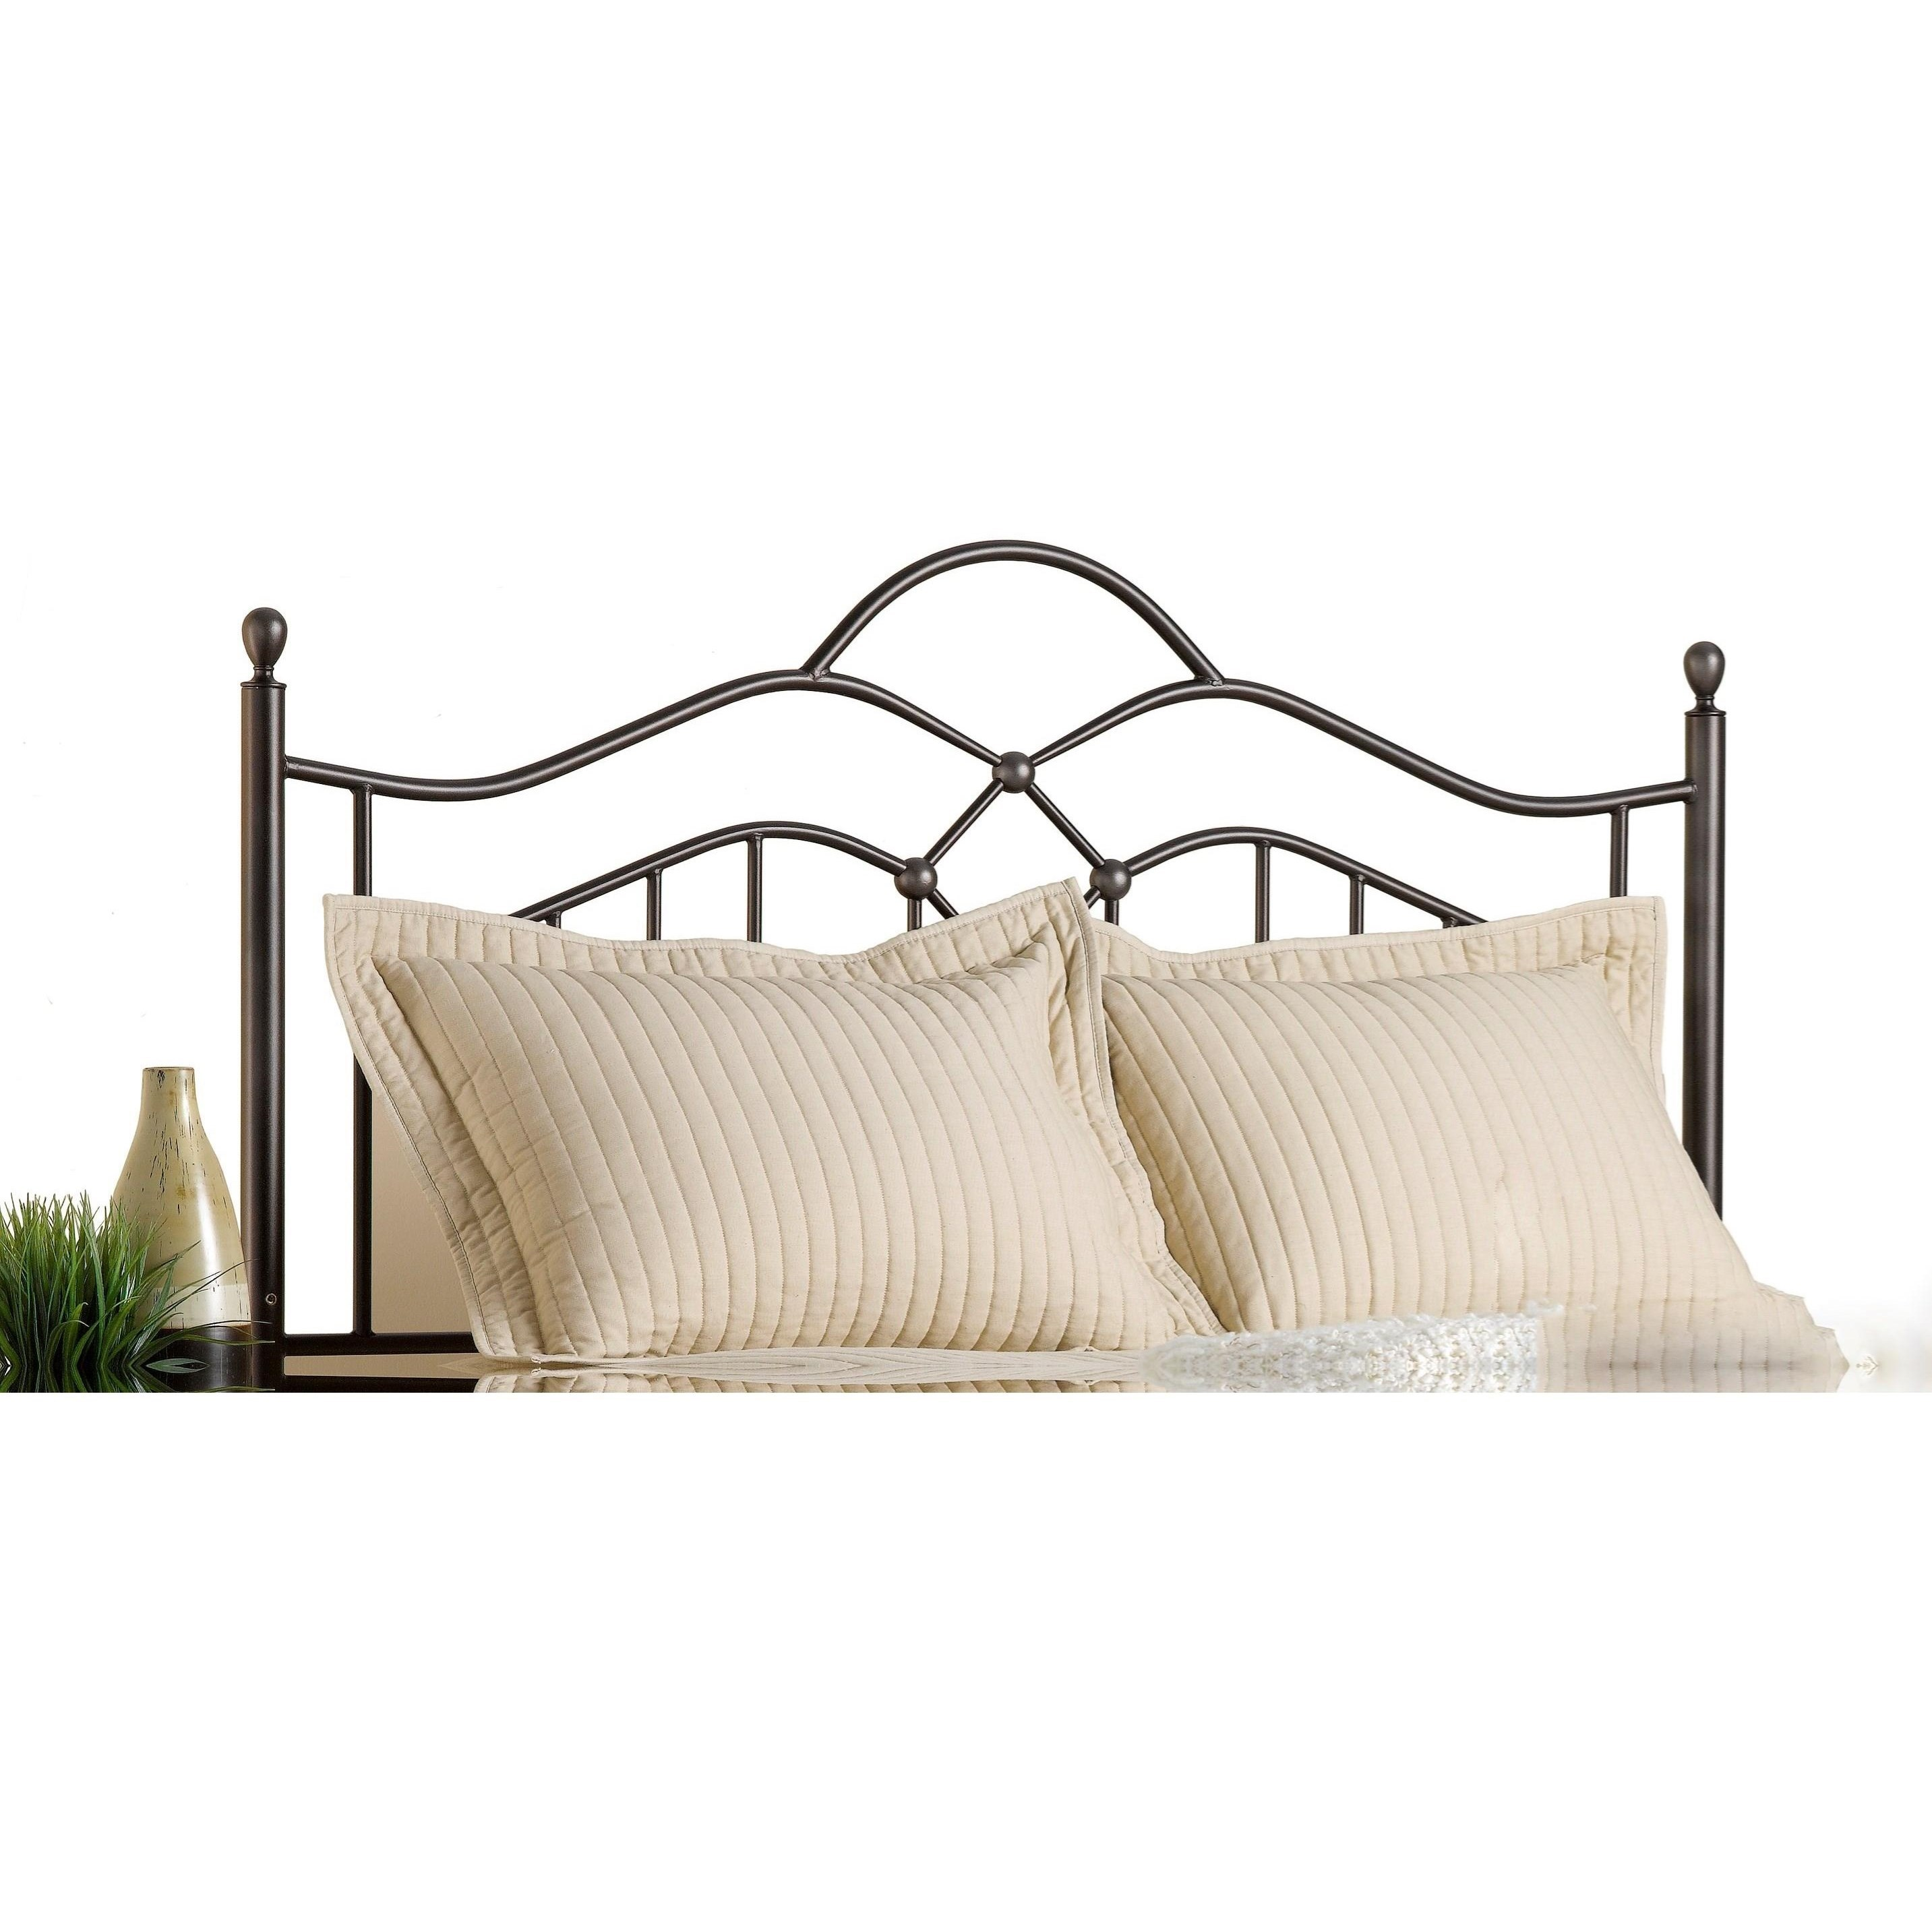 Hillsdale Metal Beds Full/Queen Oklahoma Headboard - Item Number: 1300HFQR